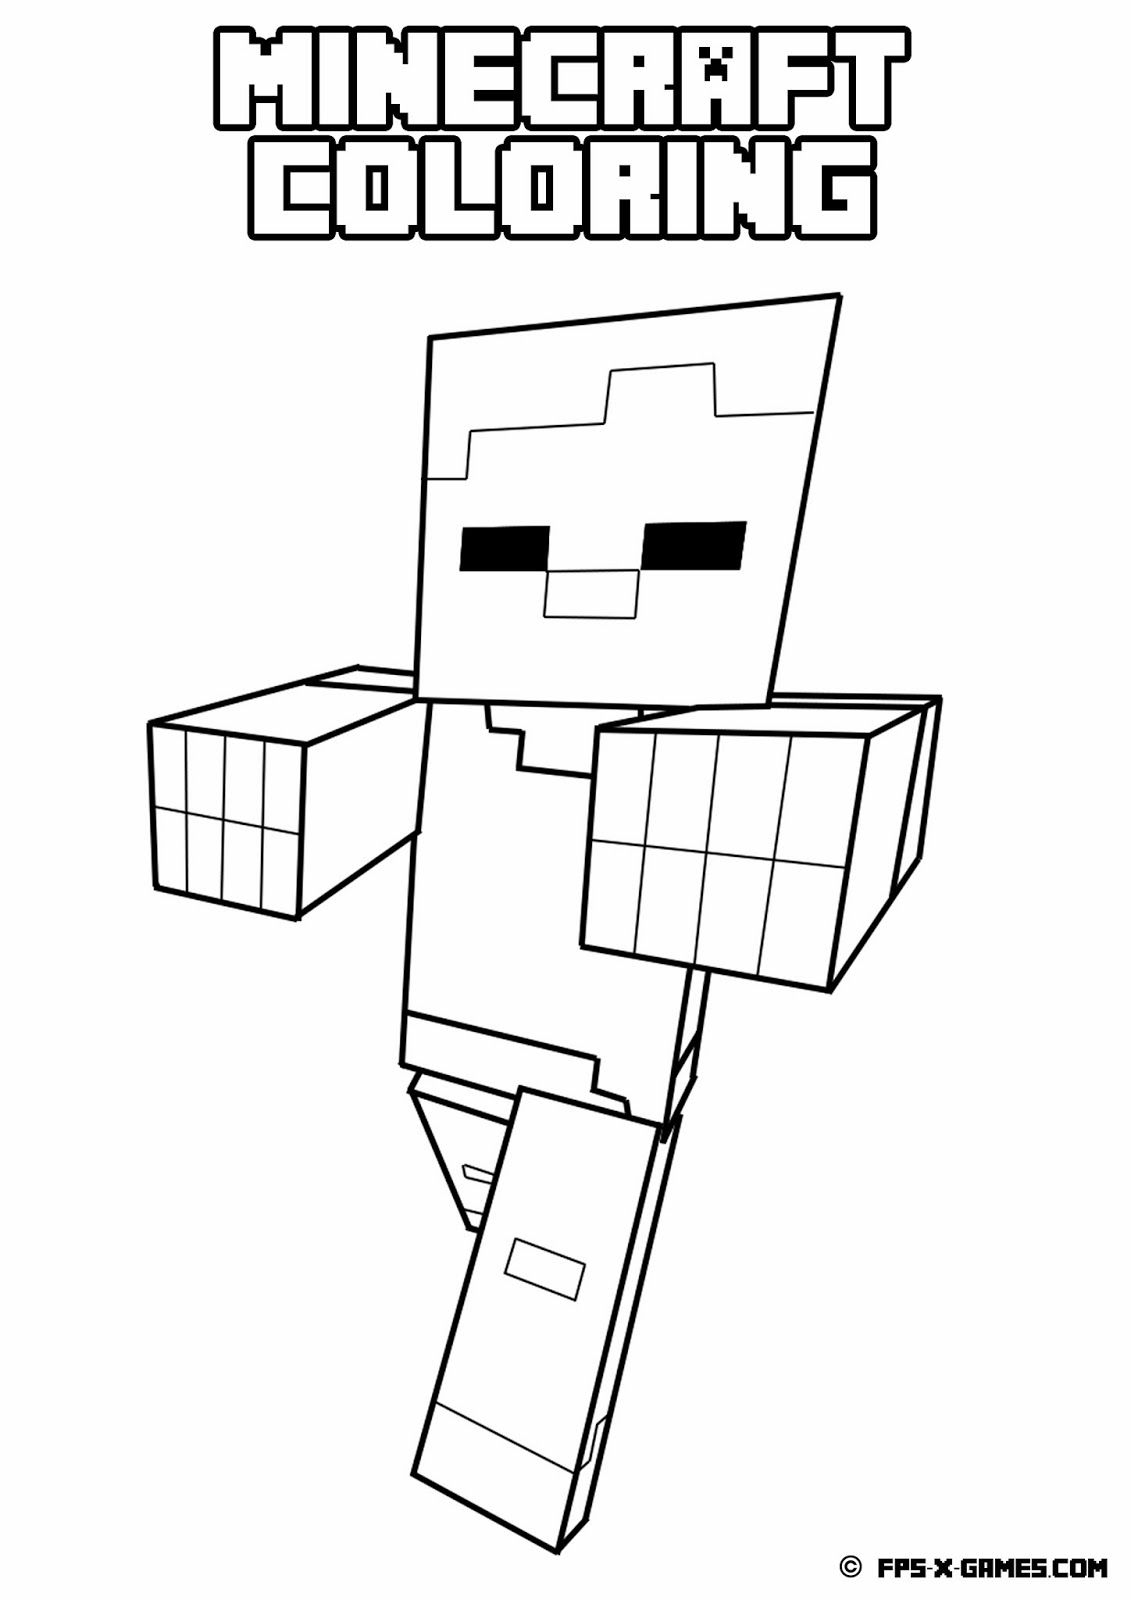 Minecraft Creeper Coloring Page Beautiful Roblox Minecraft Coloring Pages Creepers Free Printabl In 2020 Minecraft Coloring Pages Coloring Pages Pokemon Coloring Pages